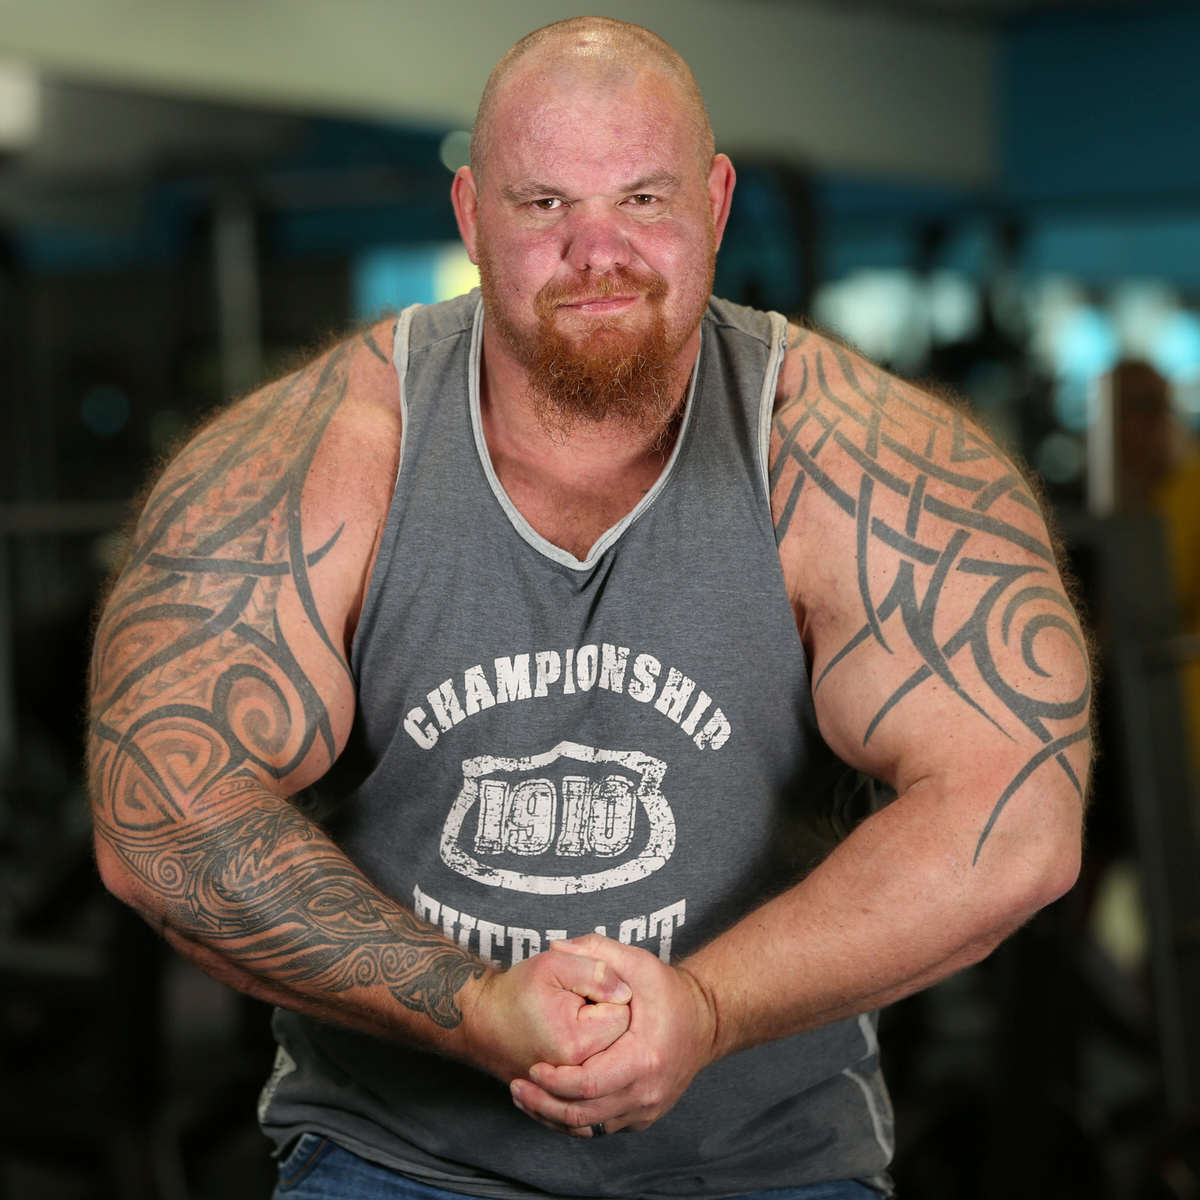 Man Turns Life Around To Set Record For UK's Largest Biceps